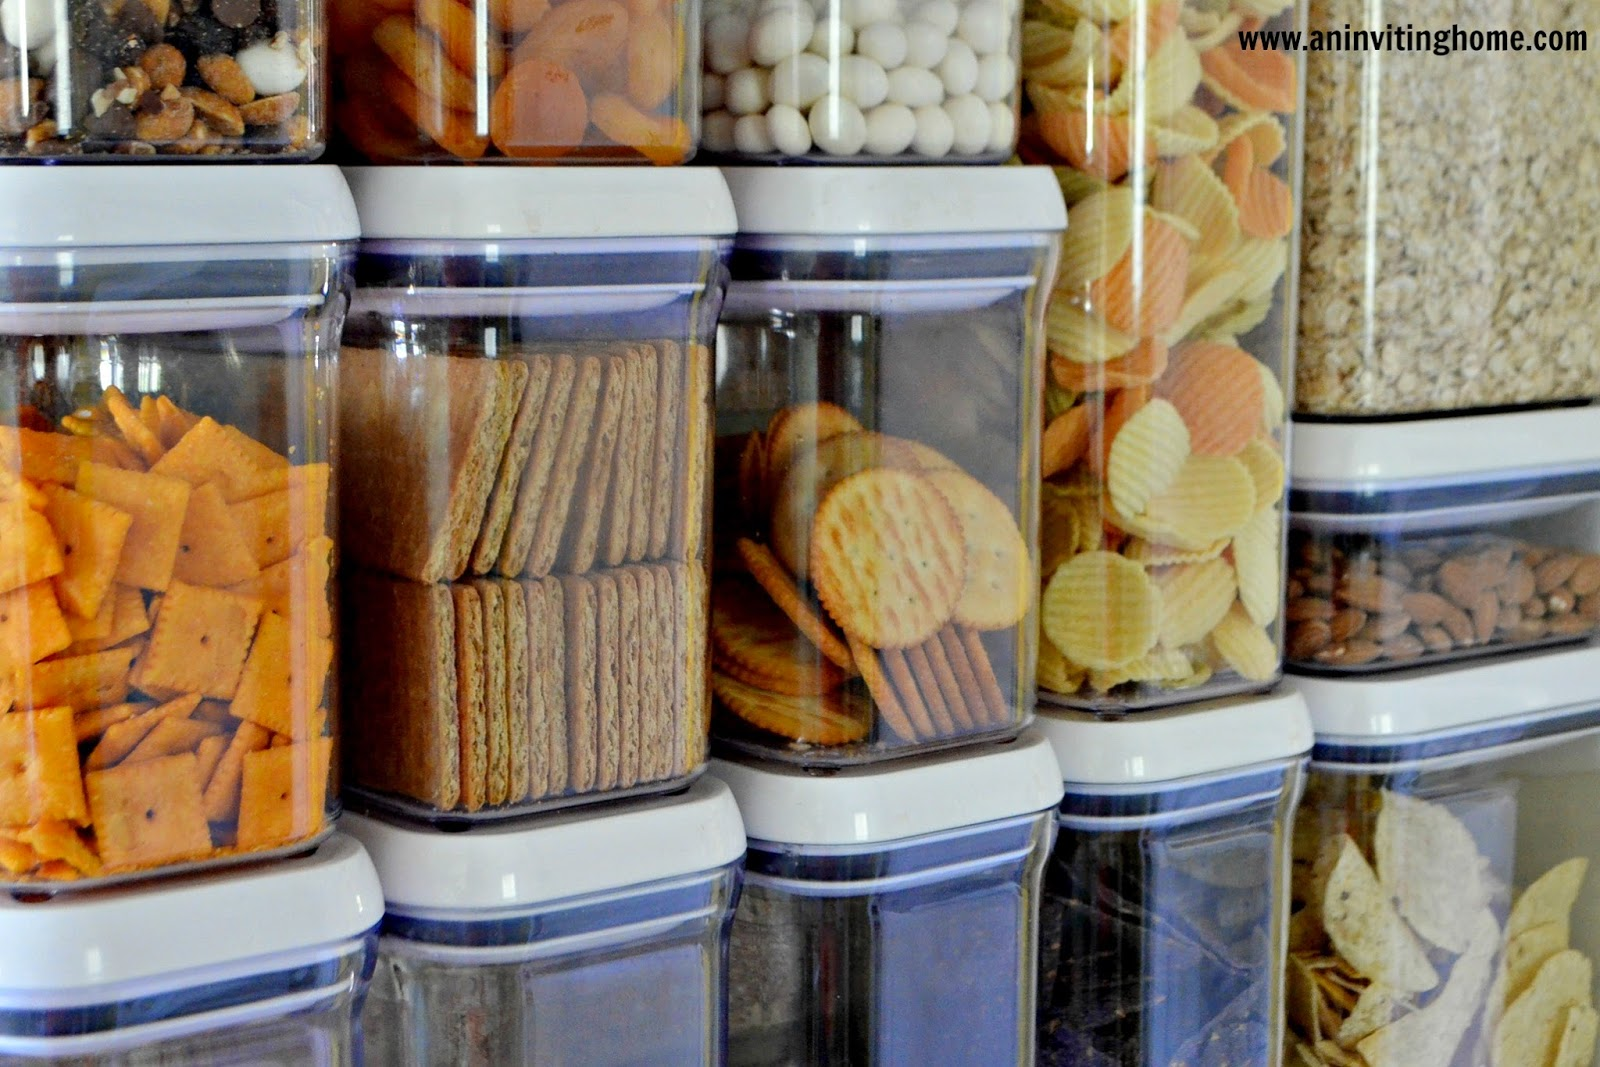 18 pantry ideas and tricks how to organize